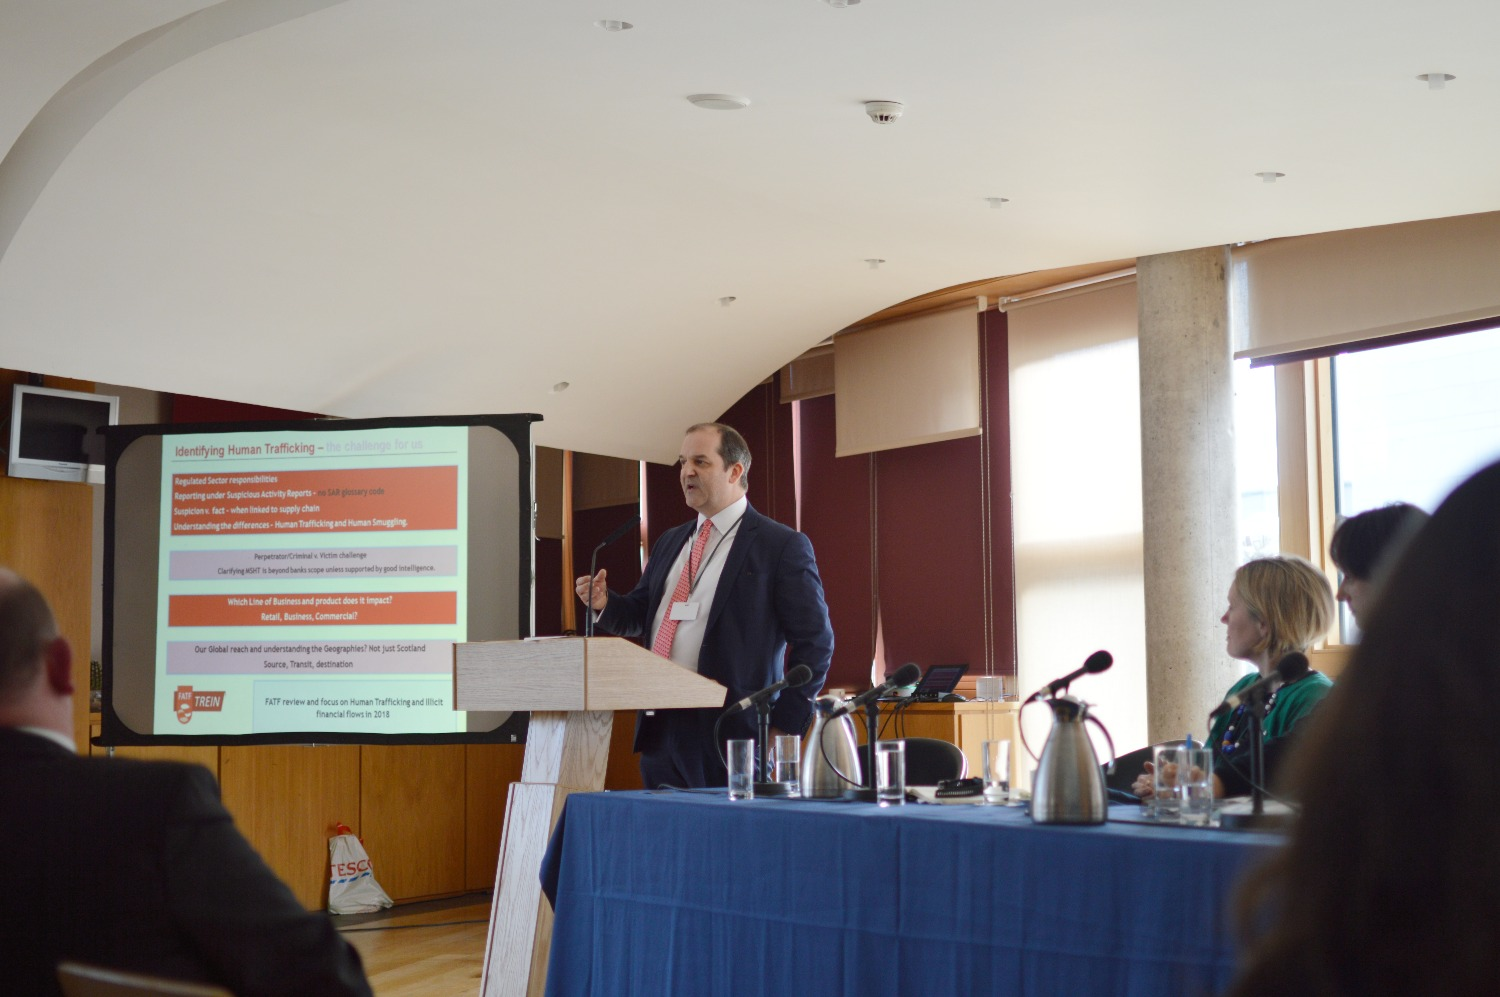 Jonathan Groom of HSBC shares his presentation on identifying trafficking in financial institutions.